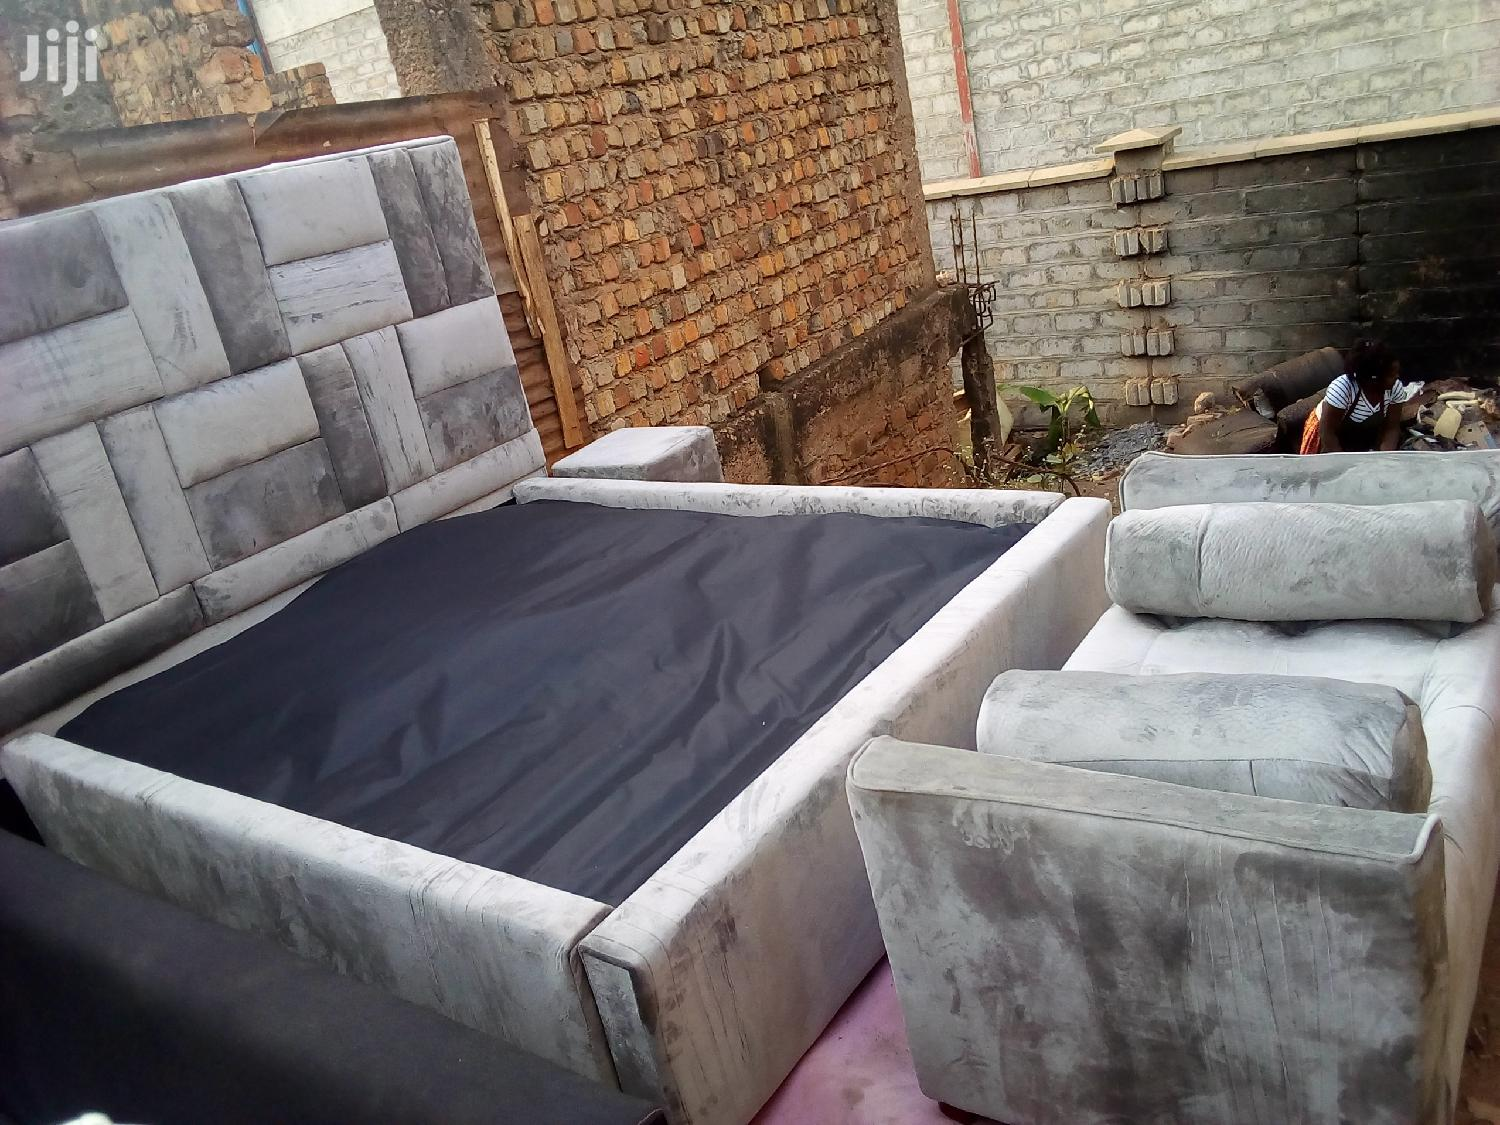 Qulity Bed 5by6   Furniture for sale in Wakiso, Central Region, Uganda